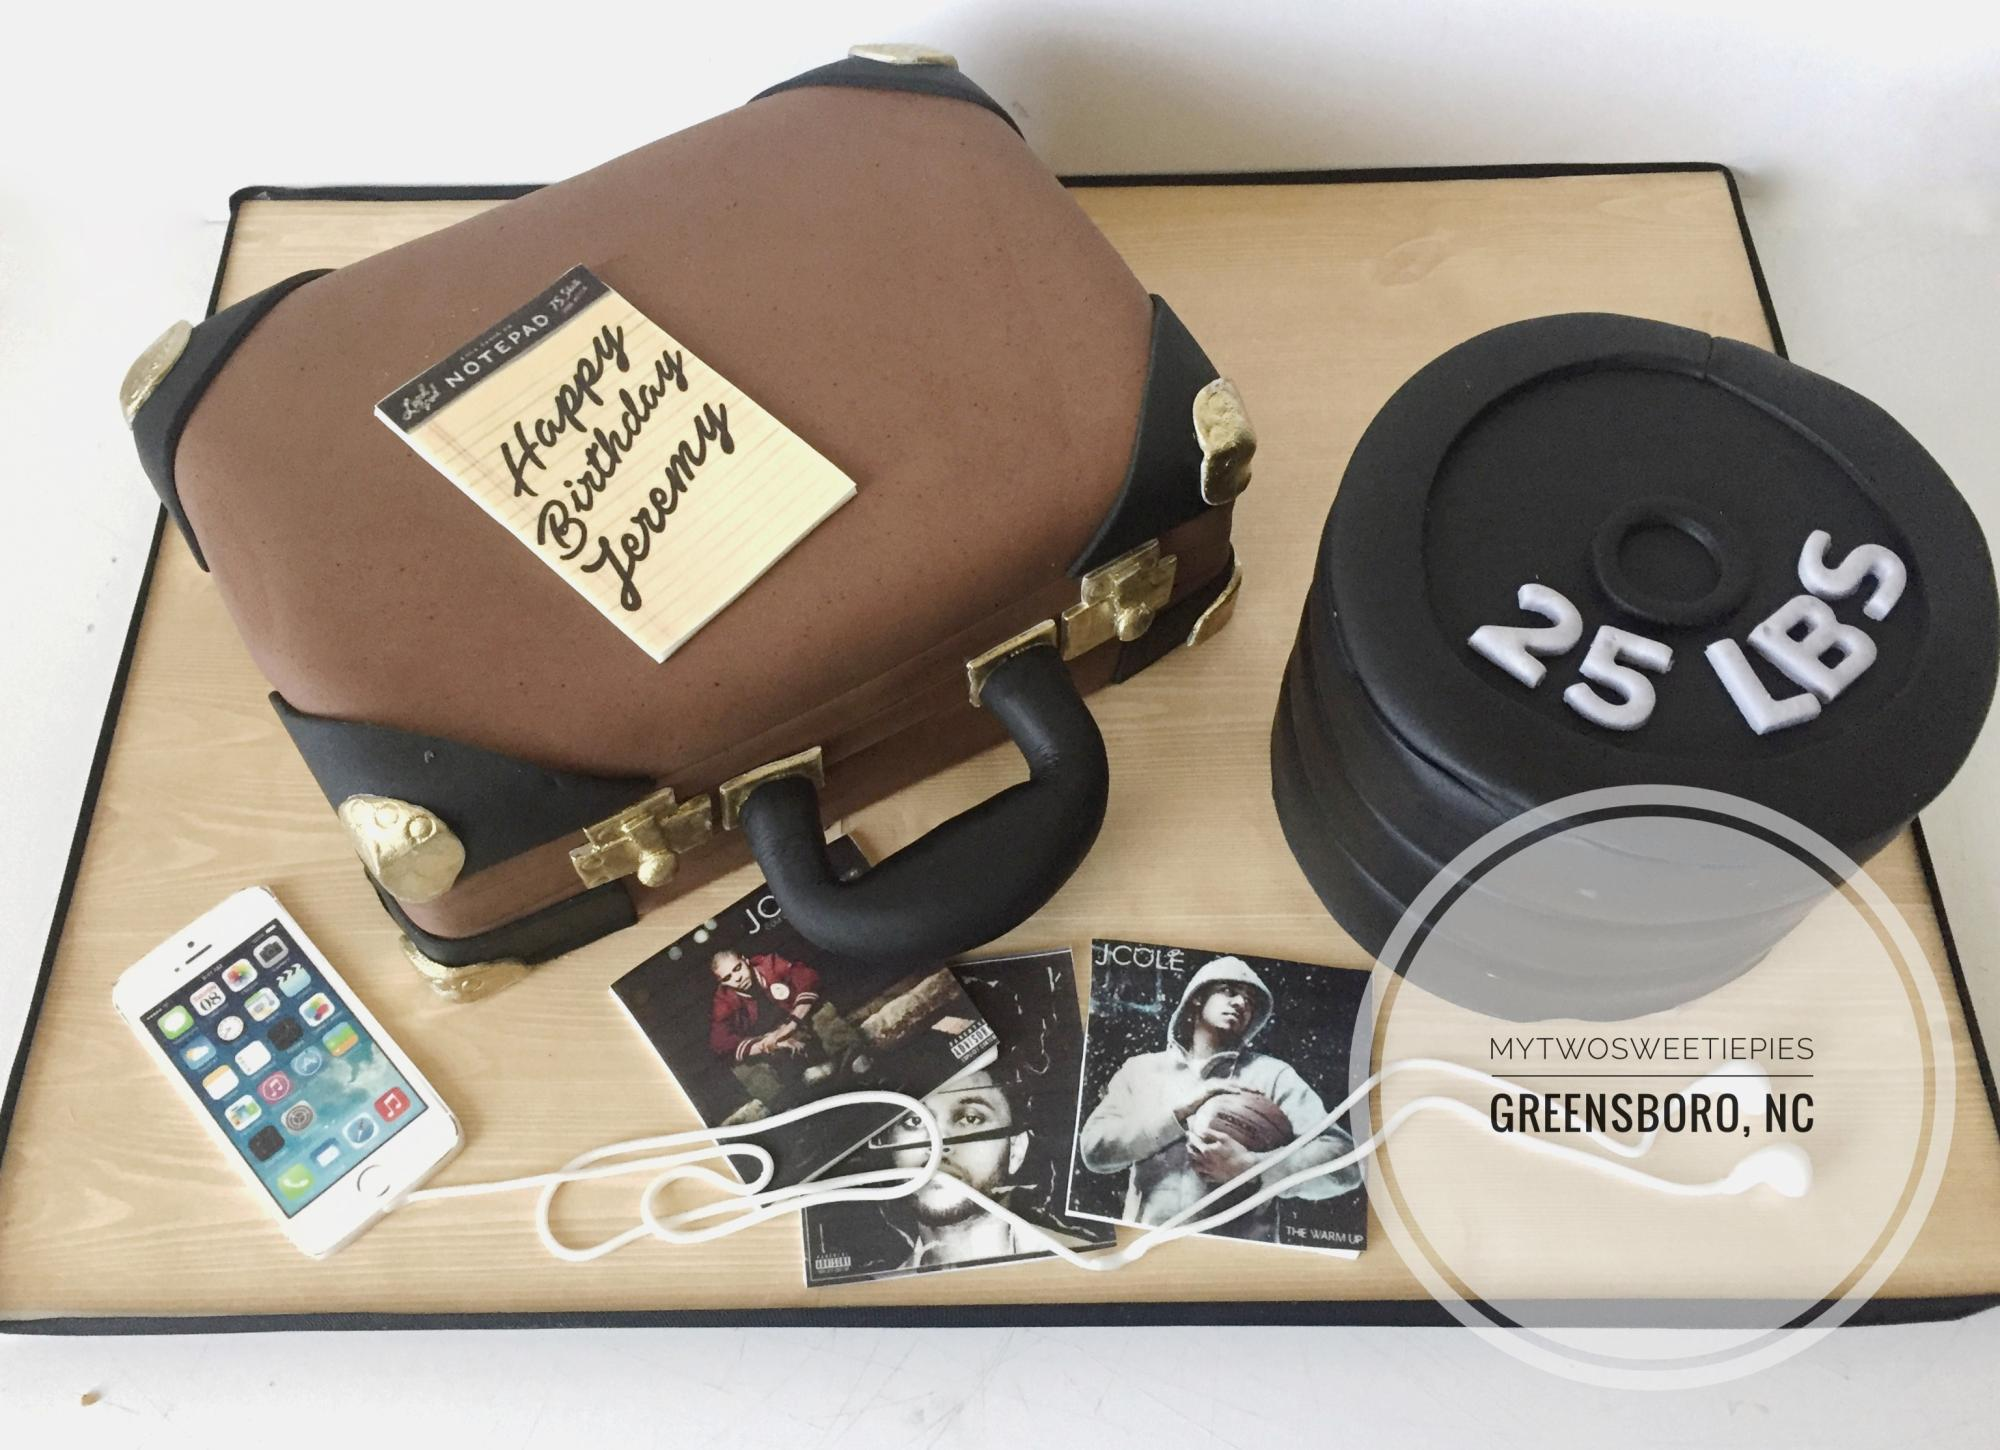 briefcase_and_weight_cake.jpg